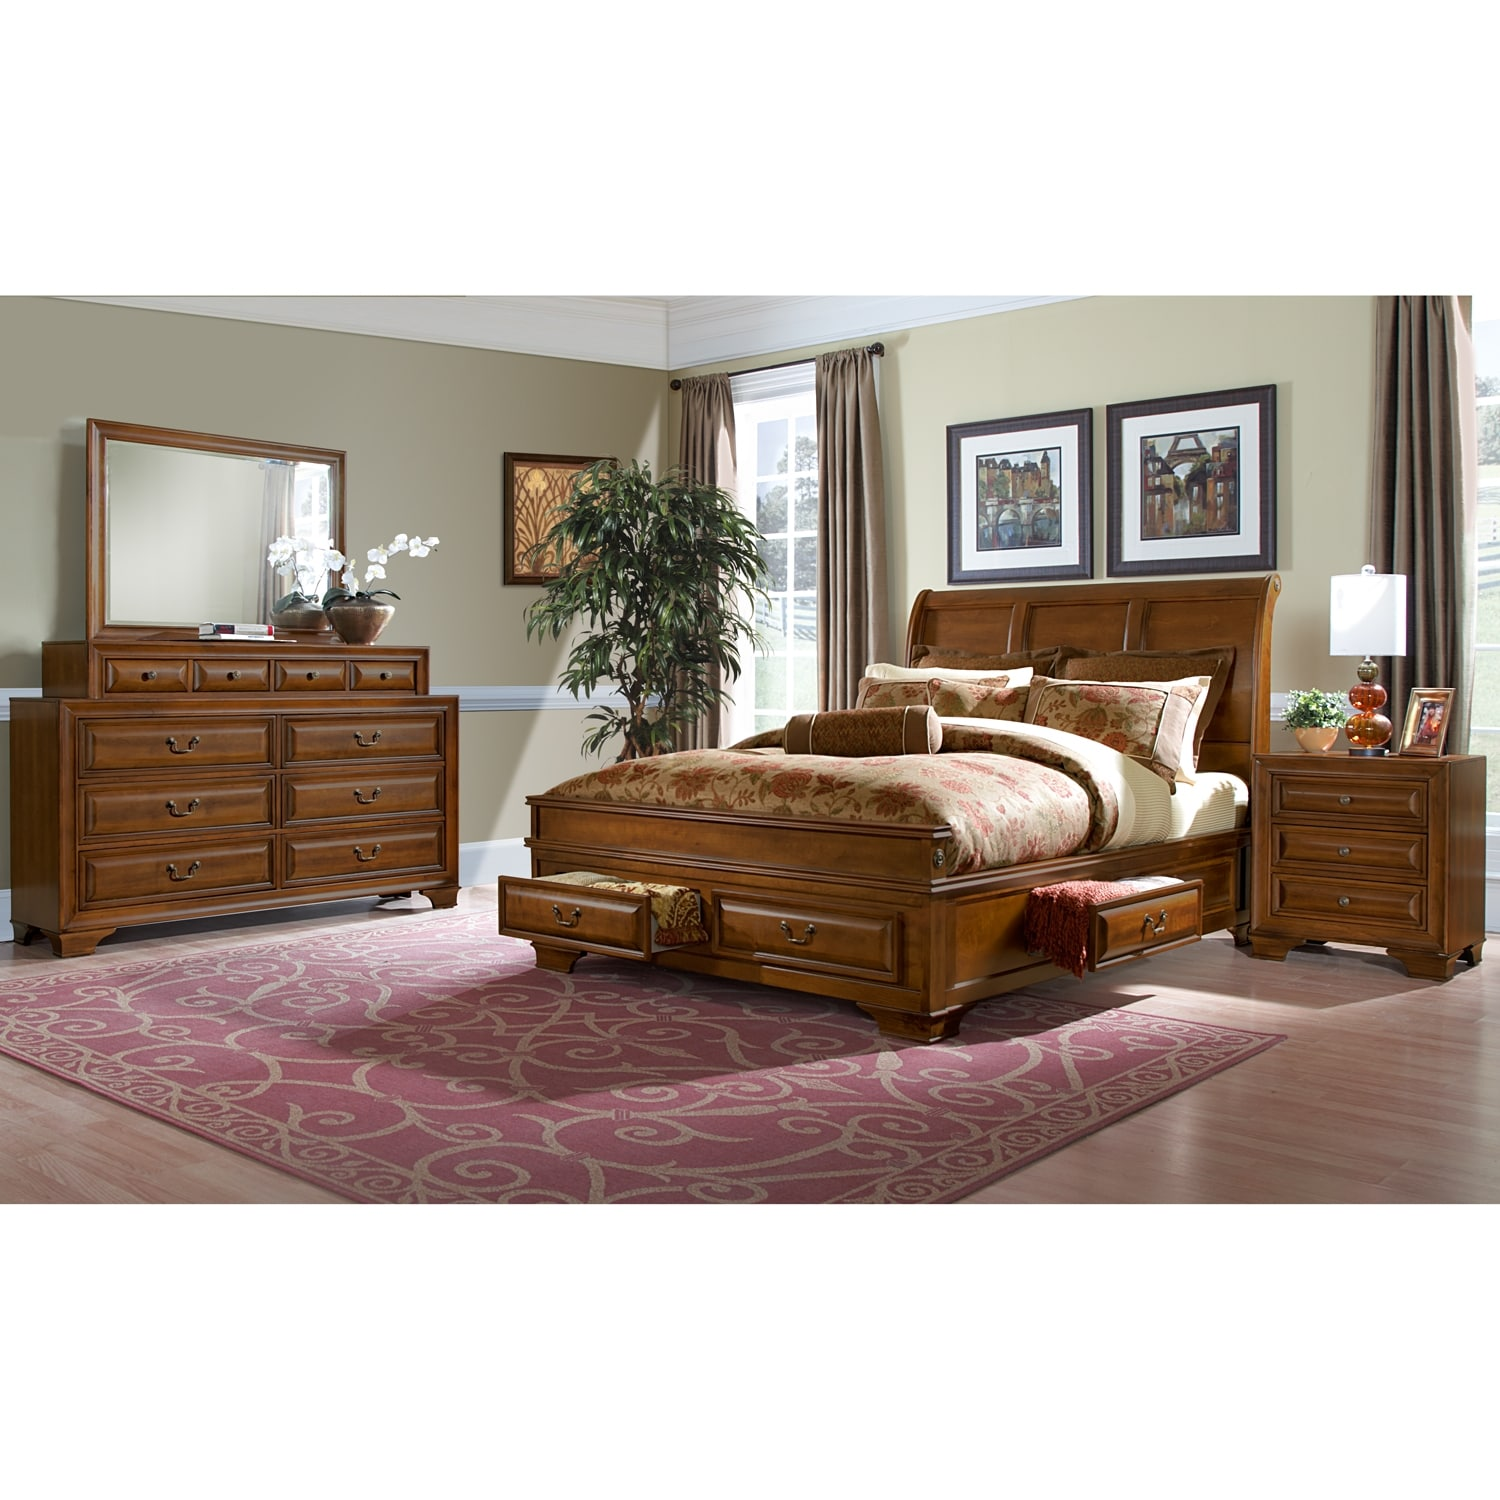 Bedroom Furniture - Sanibelle 6-Piece Queen Storage Bedroom - Pine